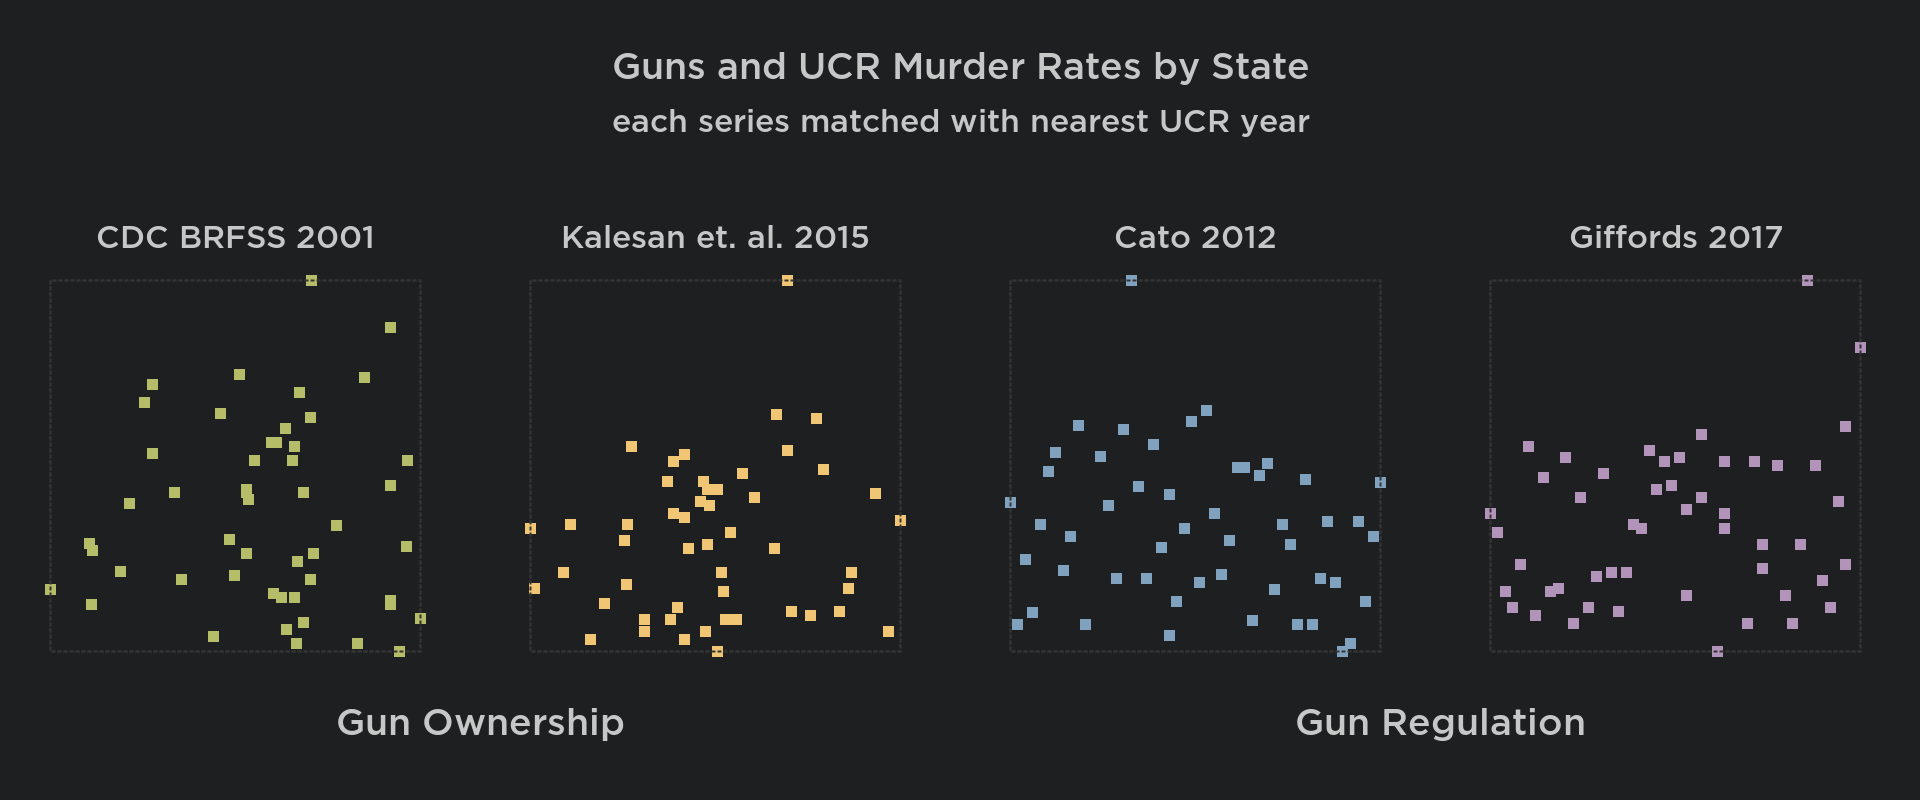 Guns and Crime: The Broad Arc of Data